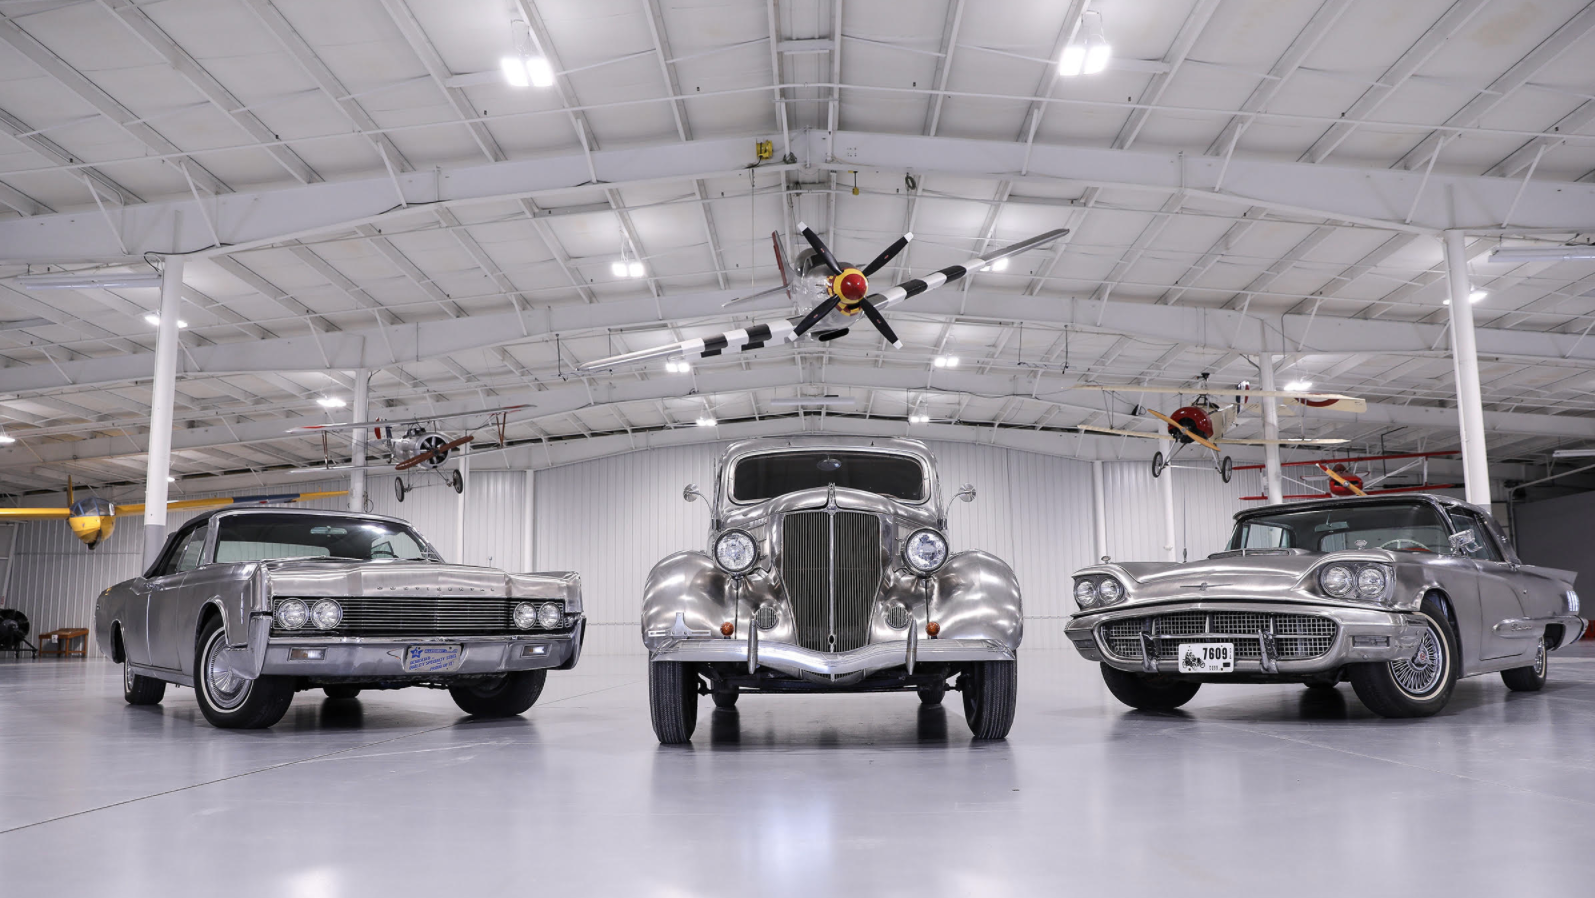 These Three Classic Fords Are Solid Detroit Stainless Steel